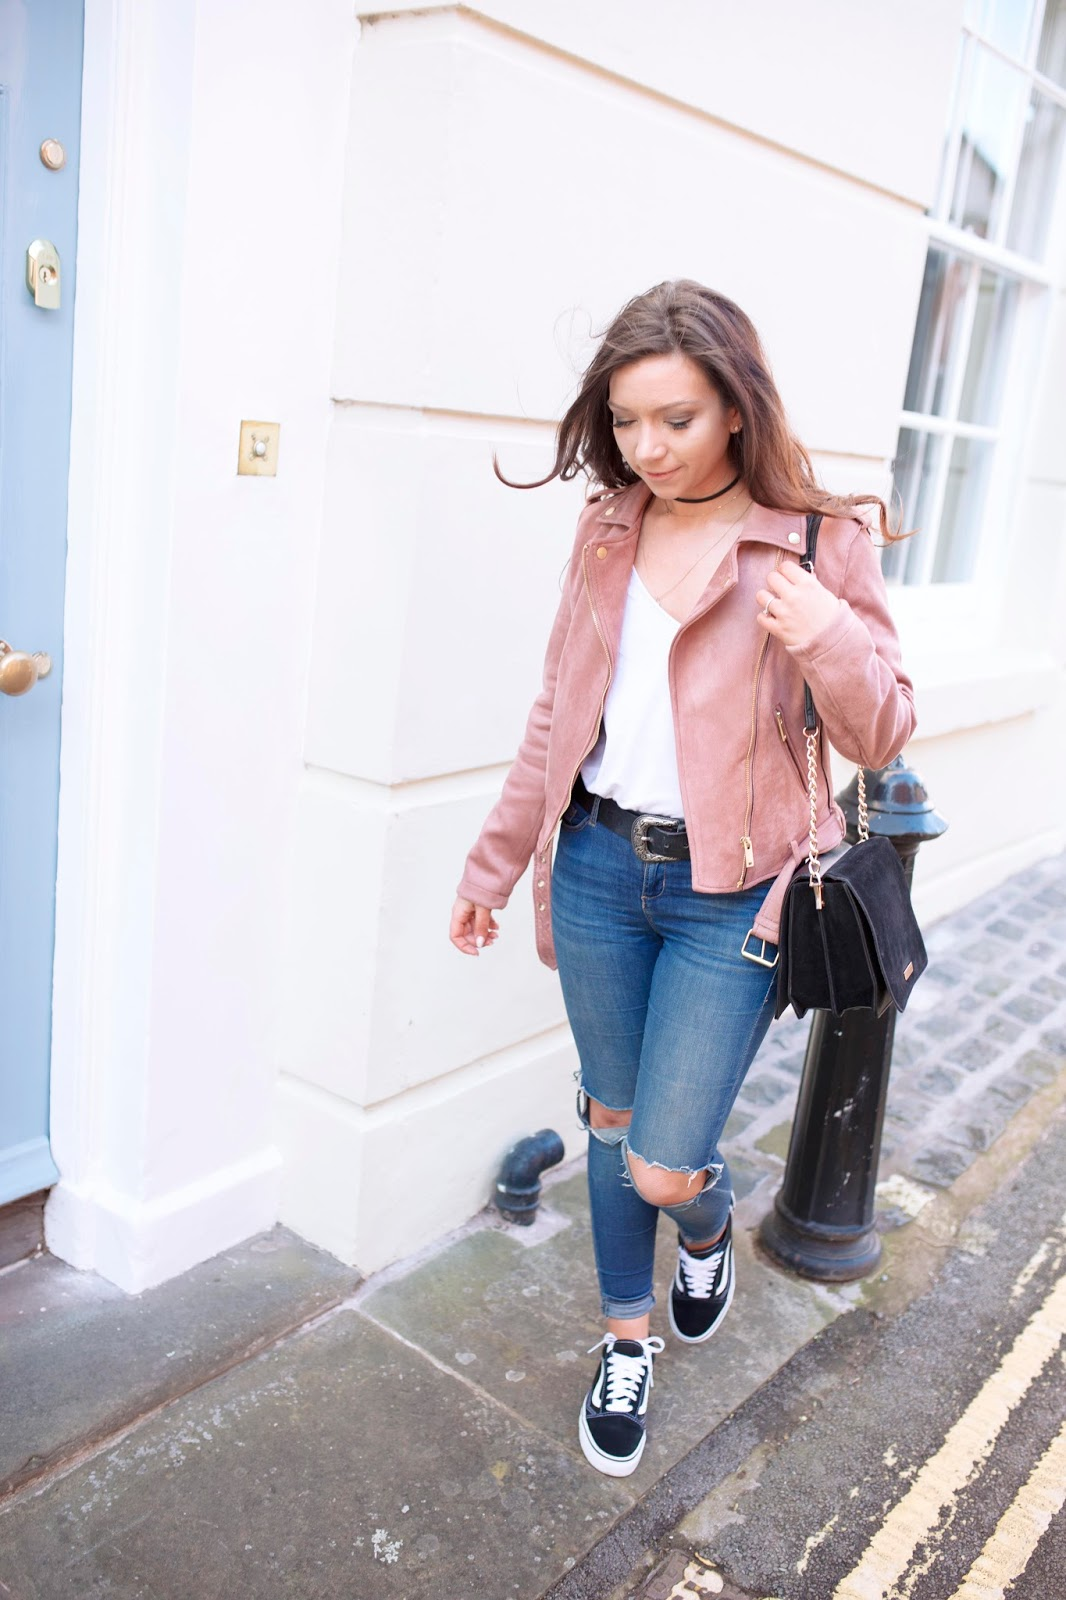 The Primark Jacket I Am Officially Obsessed With u0026 A Bit Of A Ramble... - Dizzybrunette